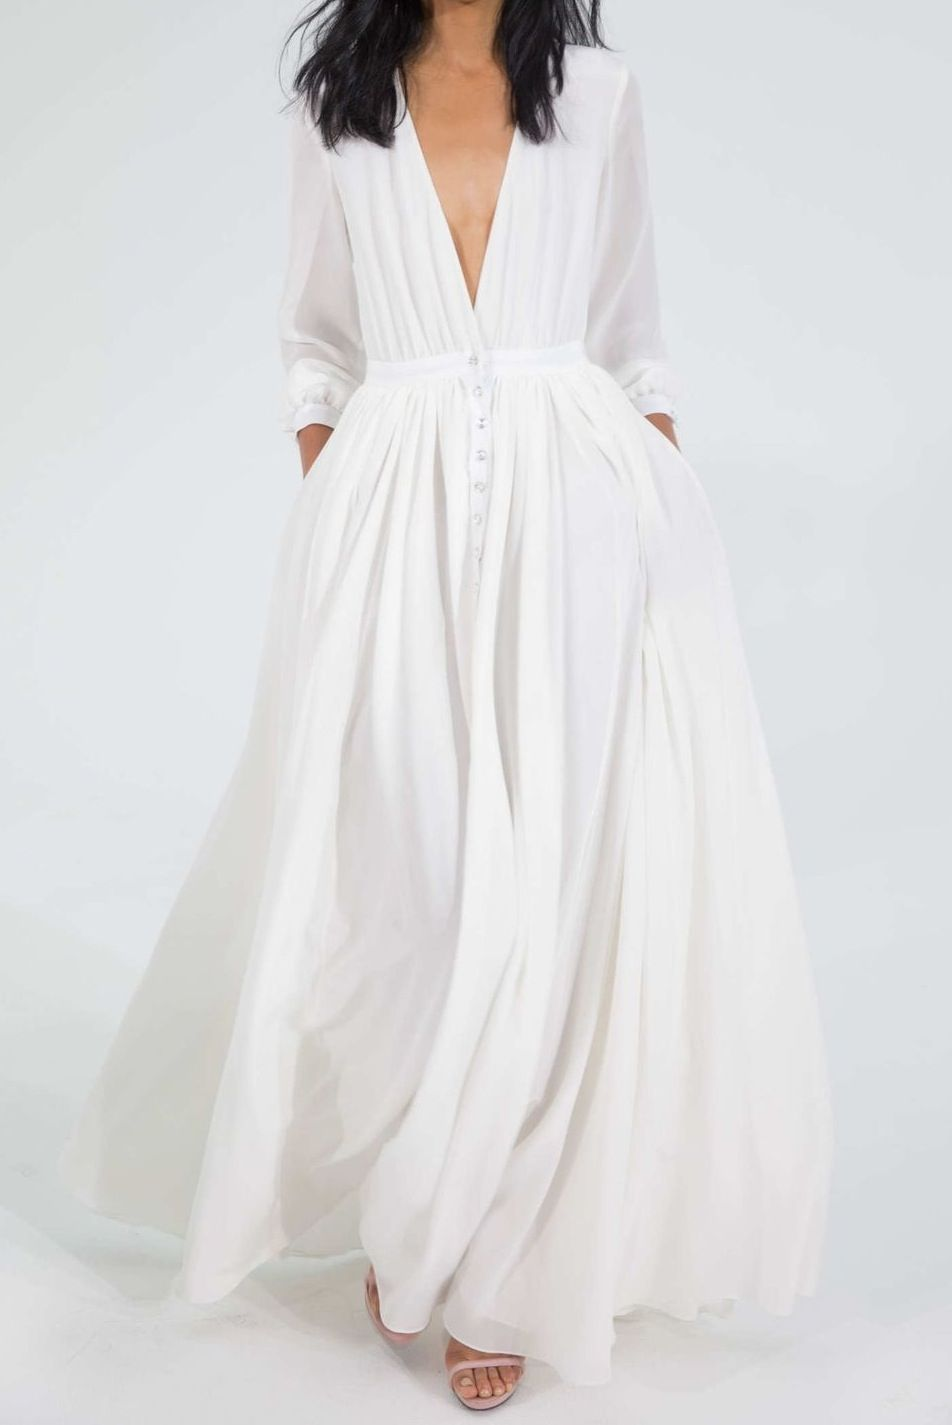 Houghton white long sleeve maxi dress nude barely there sandals